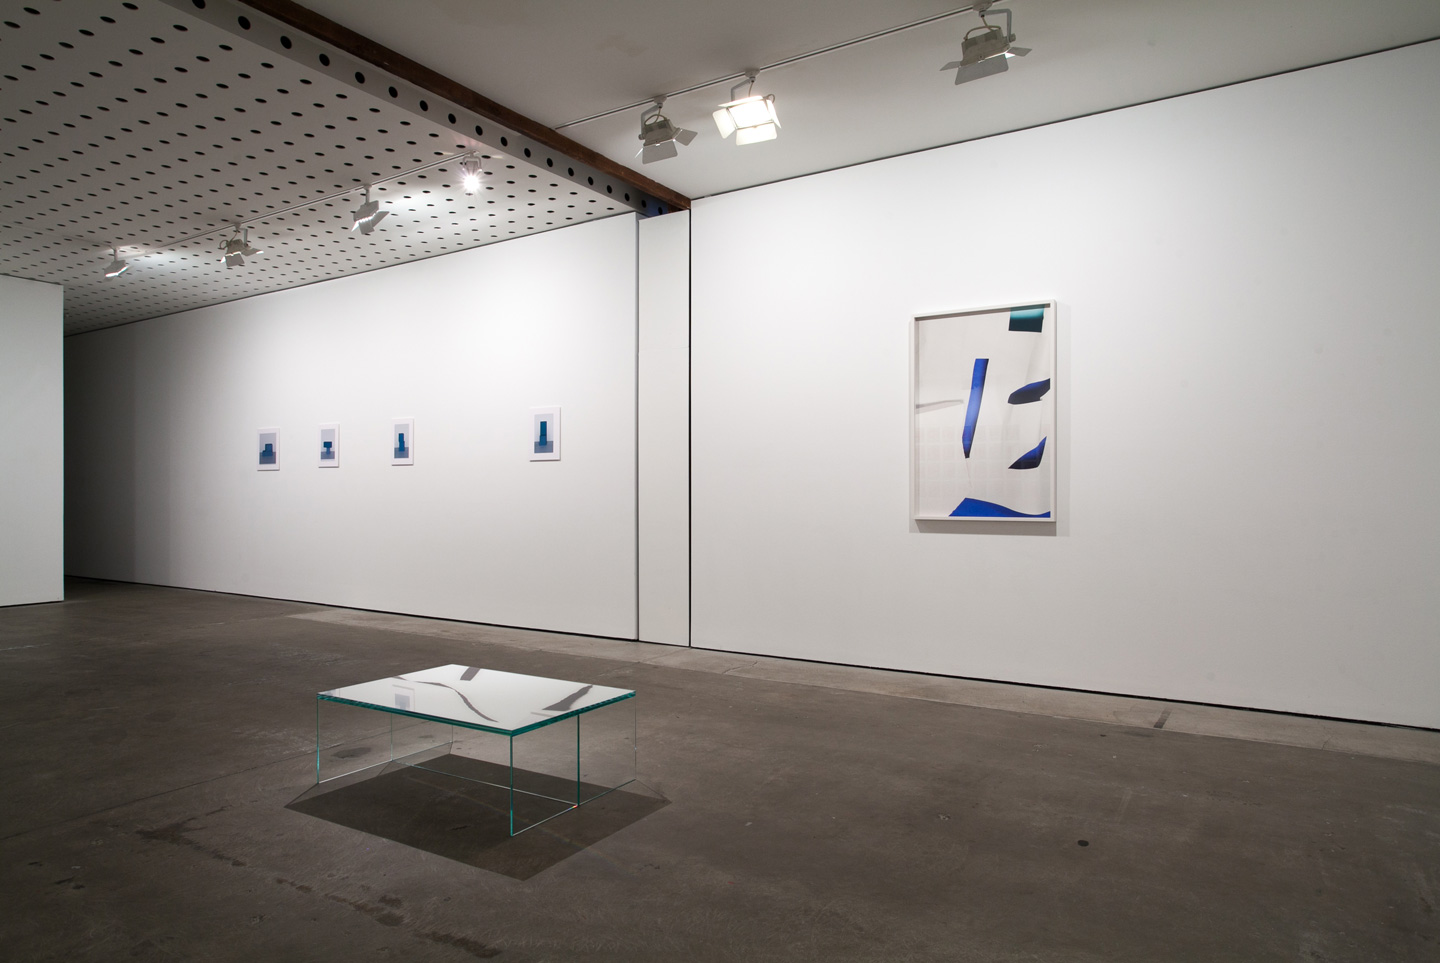 <p>Stein Rønning, Georgia Hutchison and Arini Byng. Installation view, Lit from the Top: Sculpture through Photography, Centre for Contemporary Photography. Photography: J Forsyth.</p>